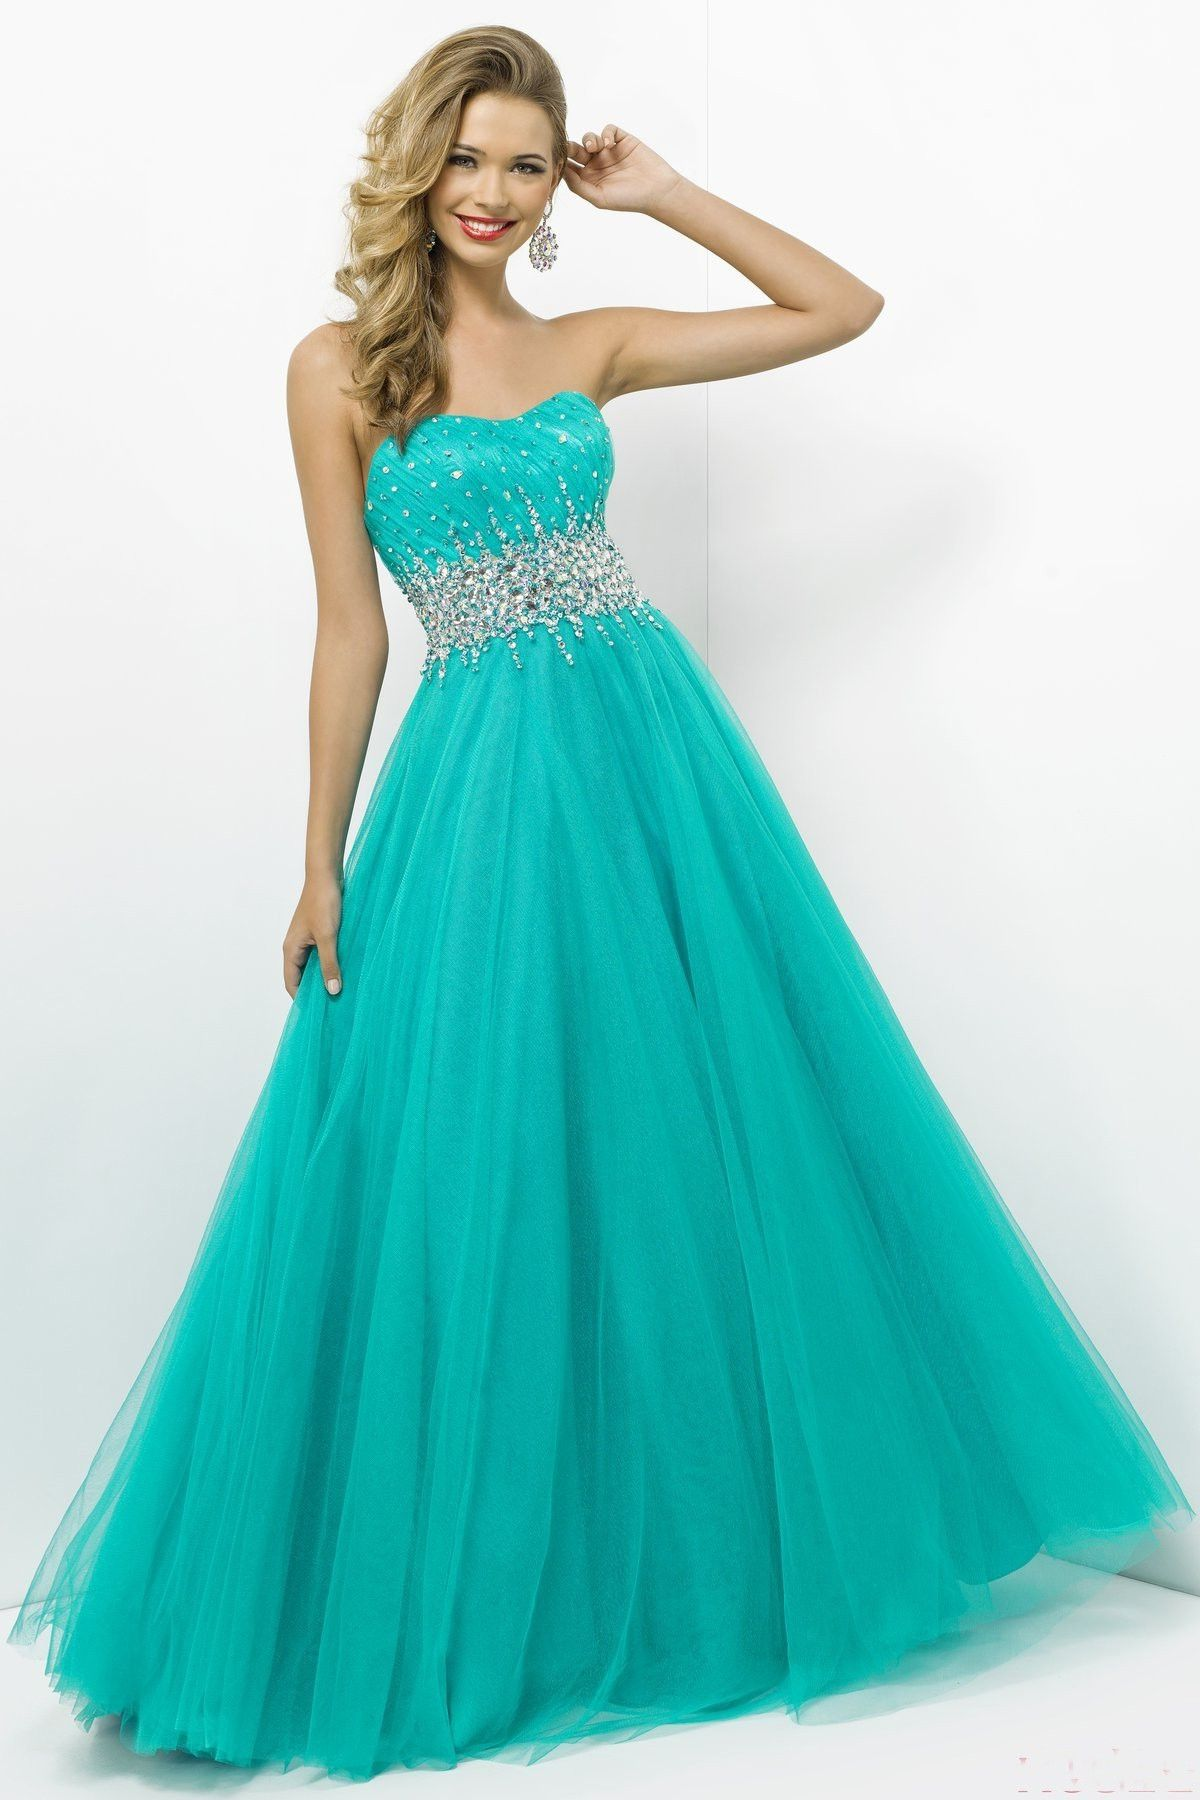 Suggest cute long prom dresses for teens